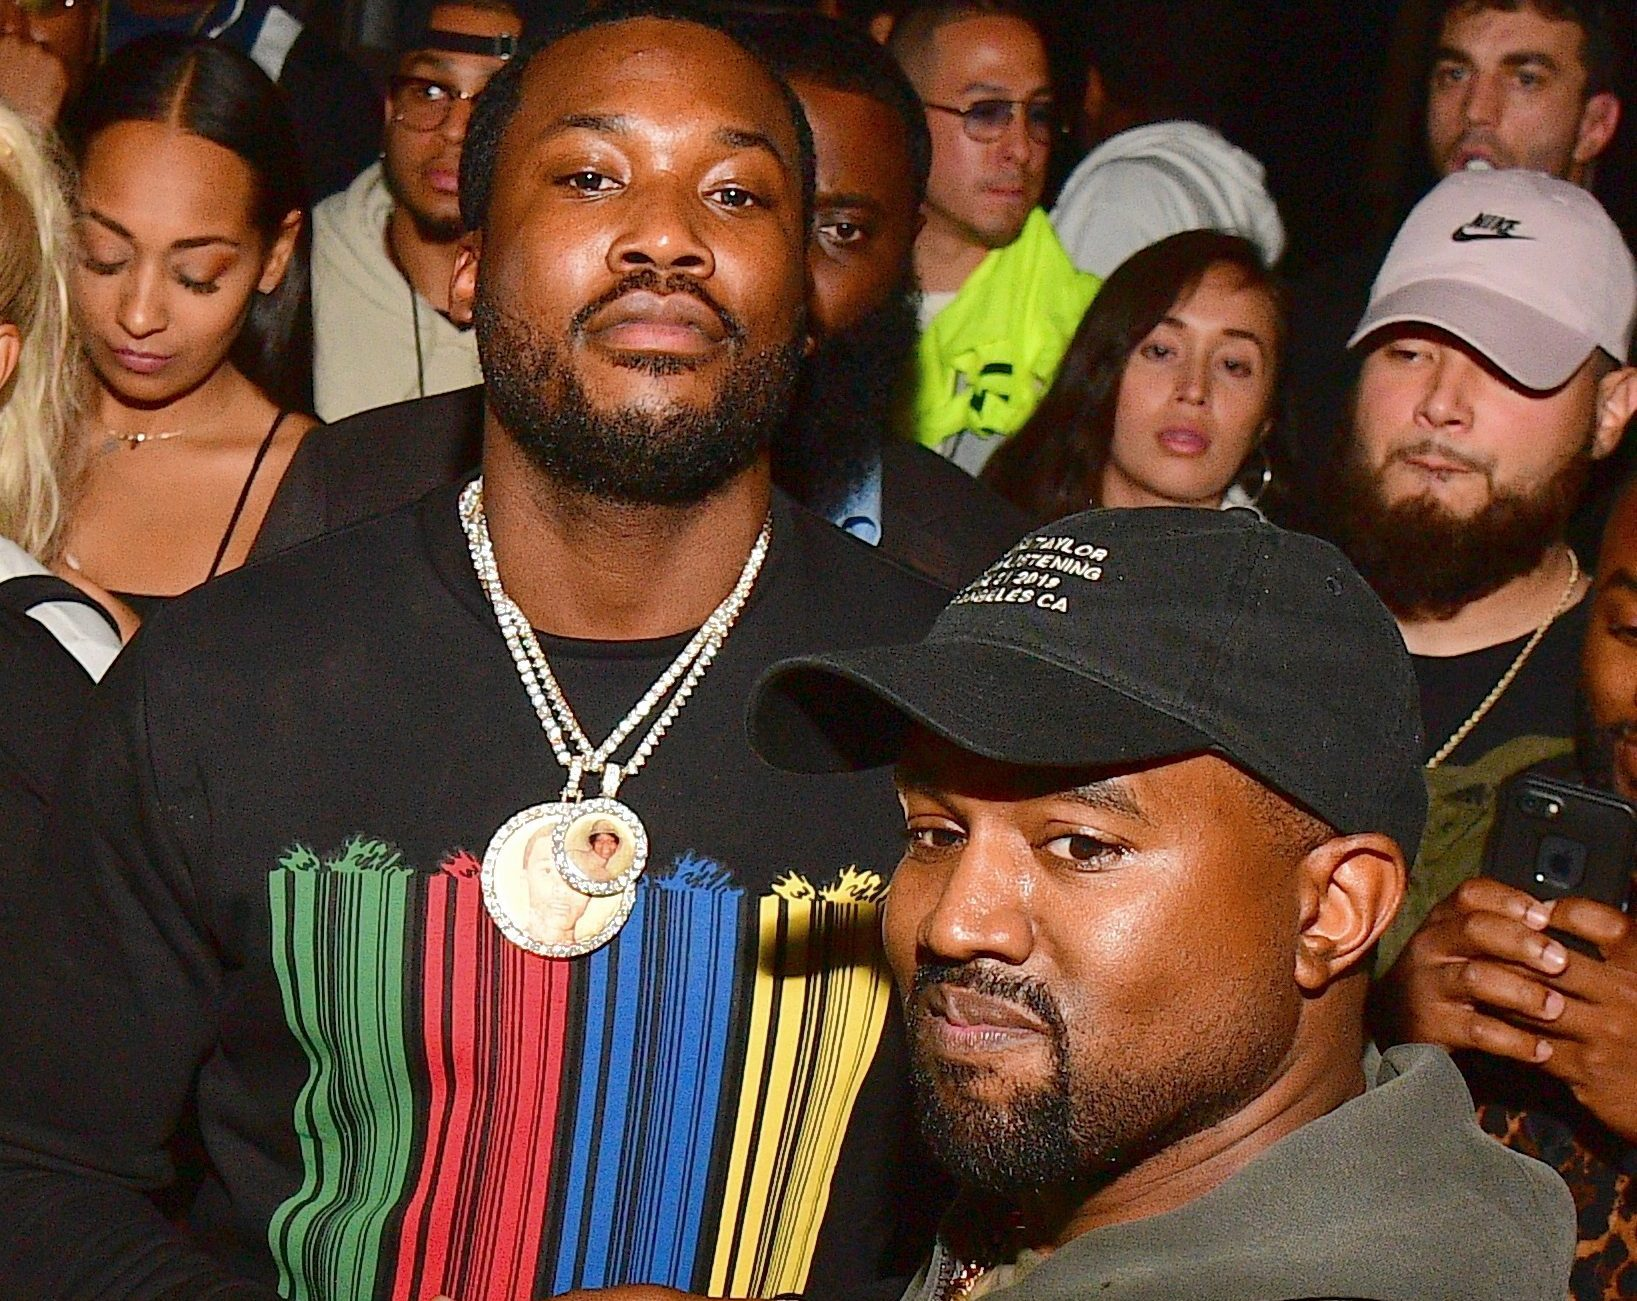 Meek Mill & Kanye West At Listening Session